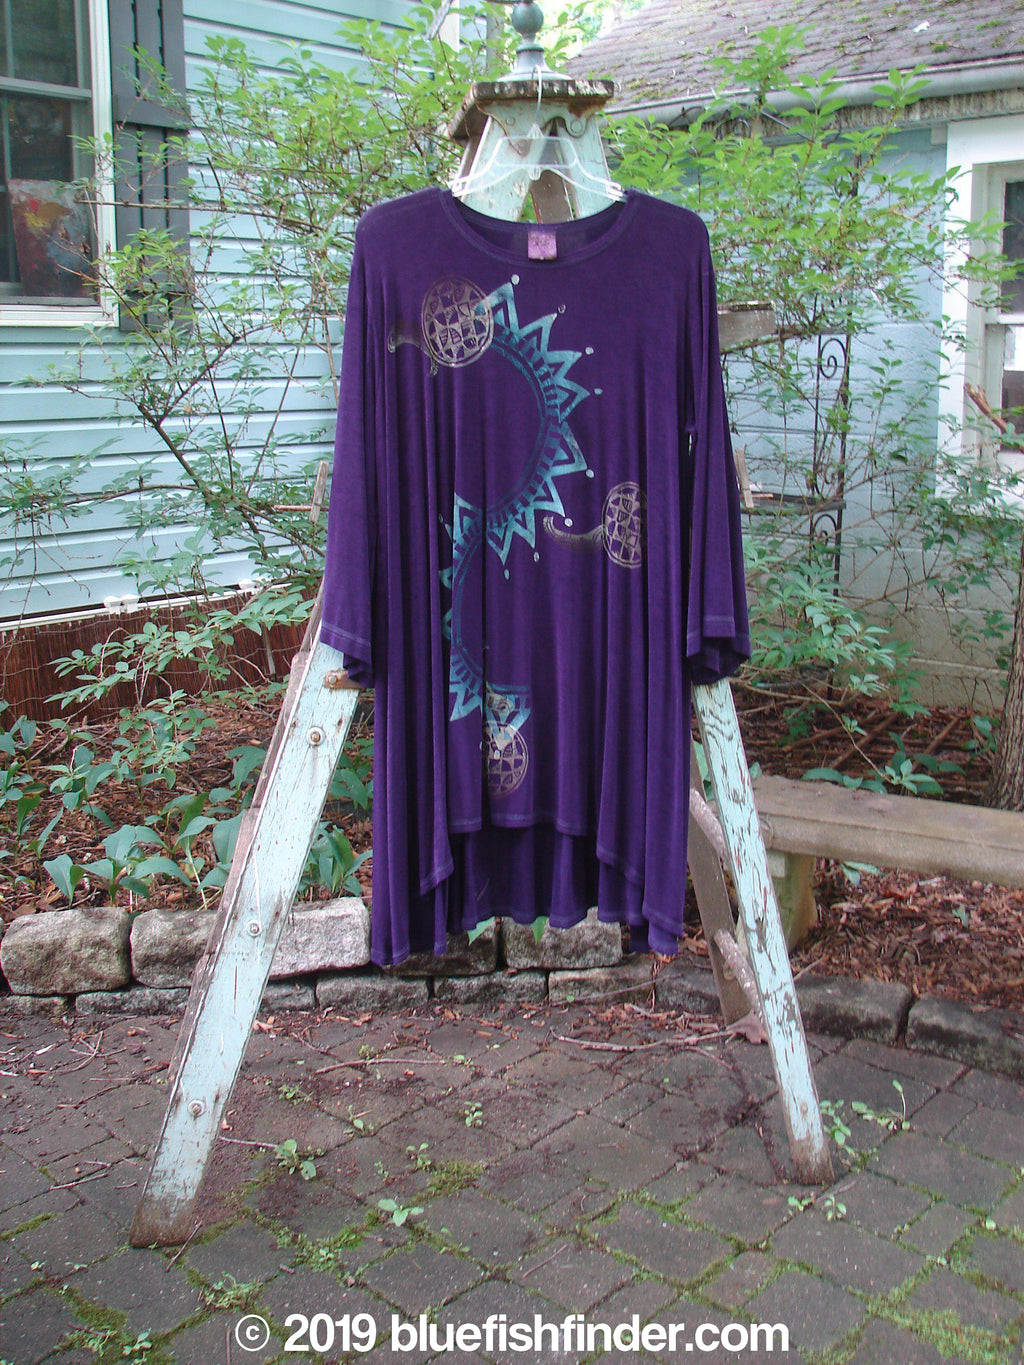 Vintage Blue Fish Clothing 1996 Acetate Calabash Dress Sun Byzantium Size 2- Bluefishfinder.com